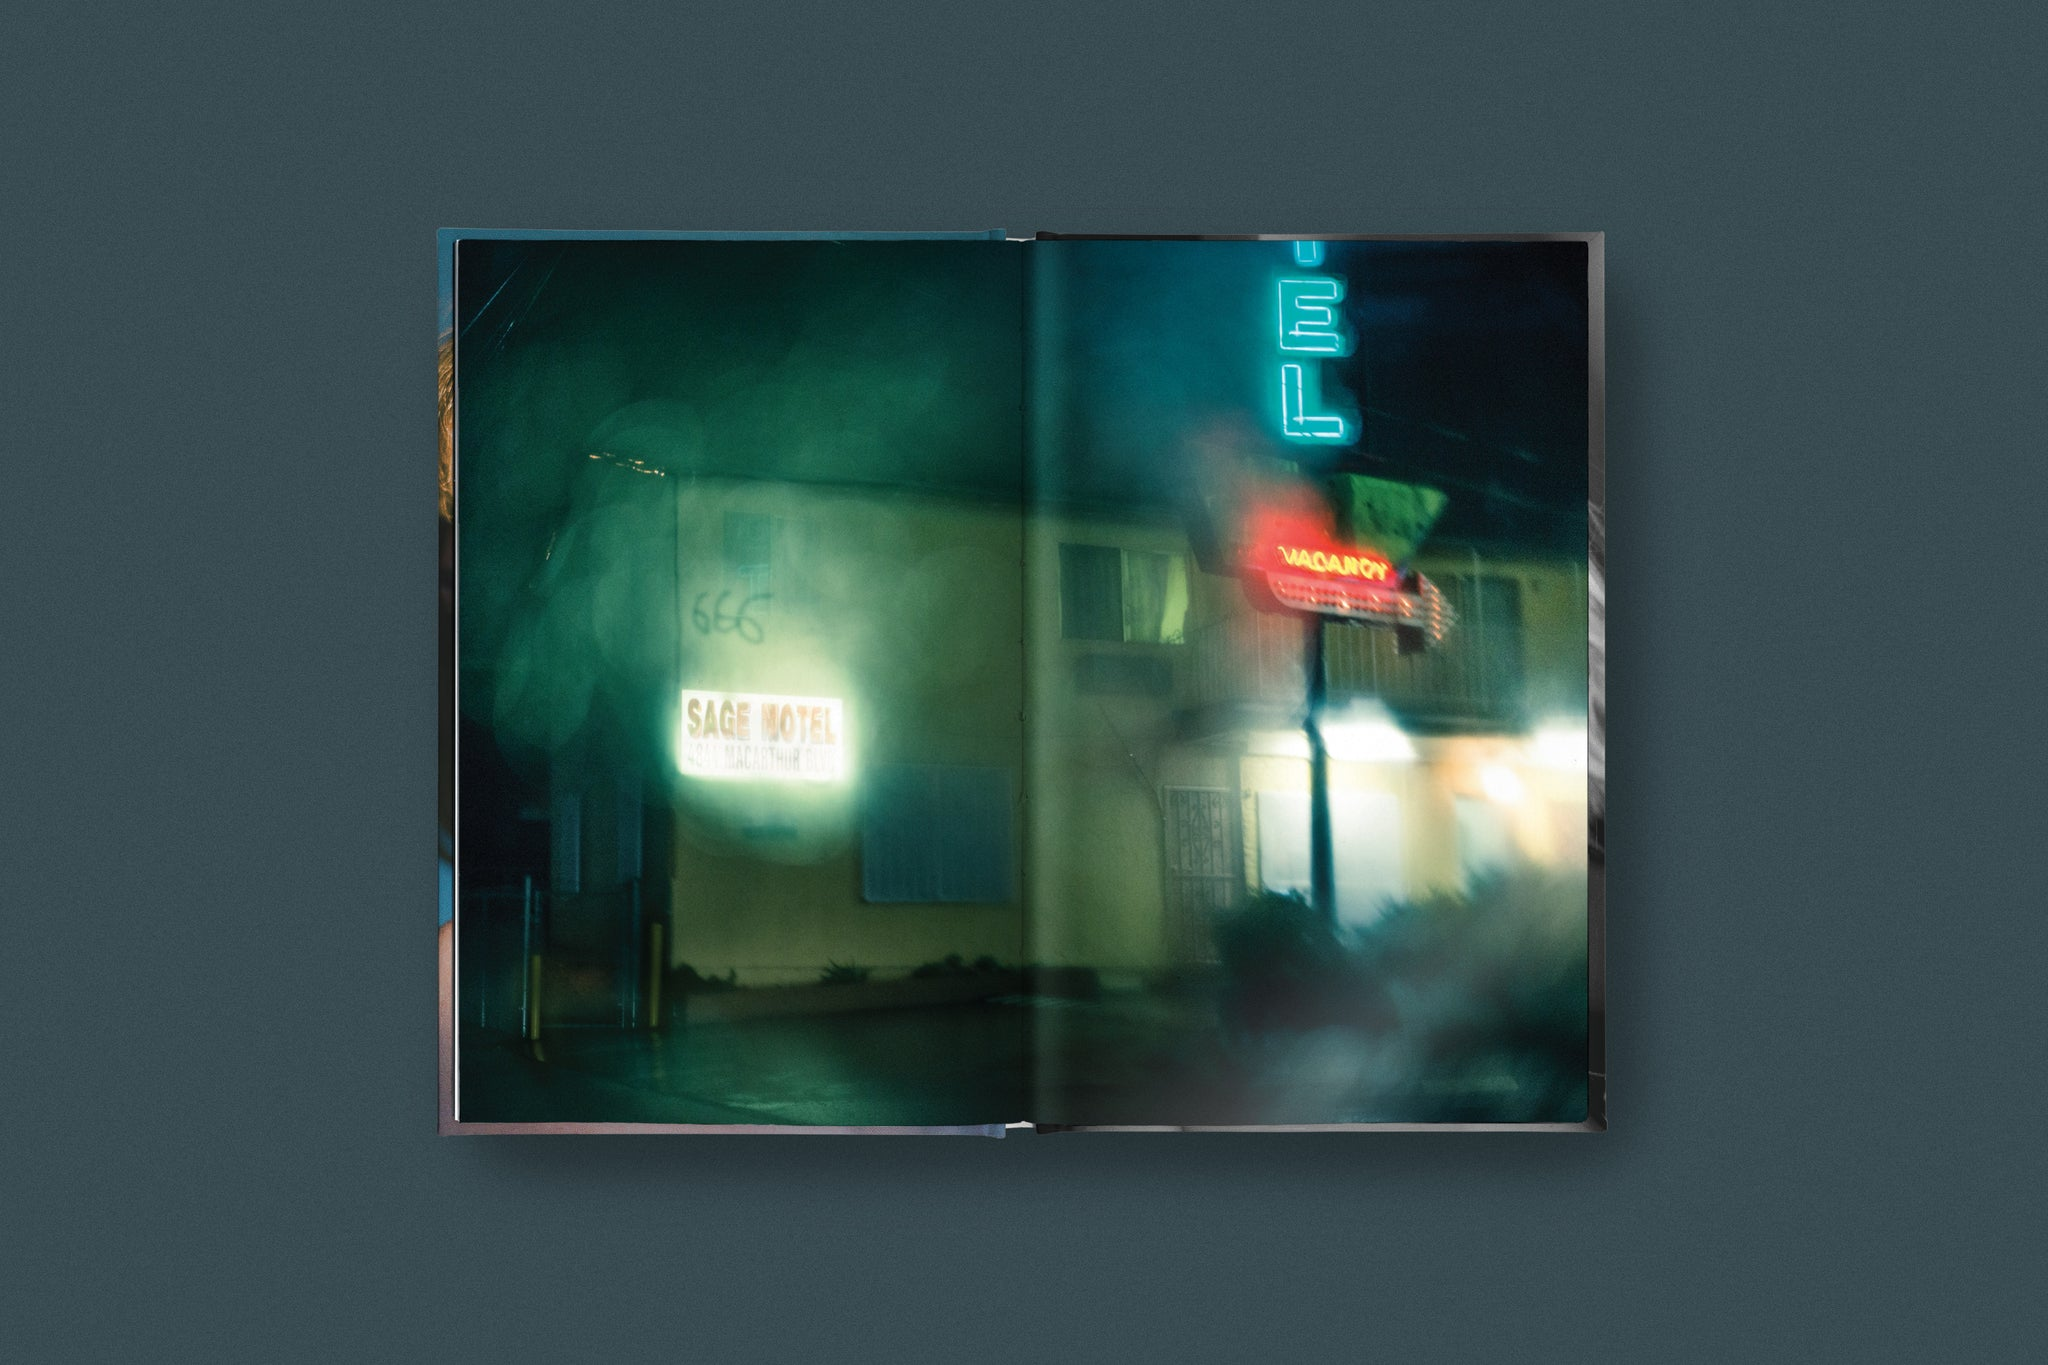 Todd Hido & Amanda Schiff: After Her